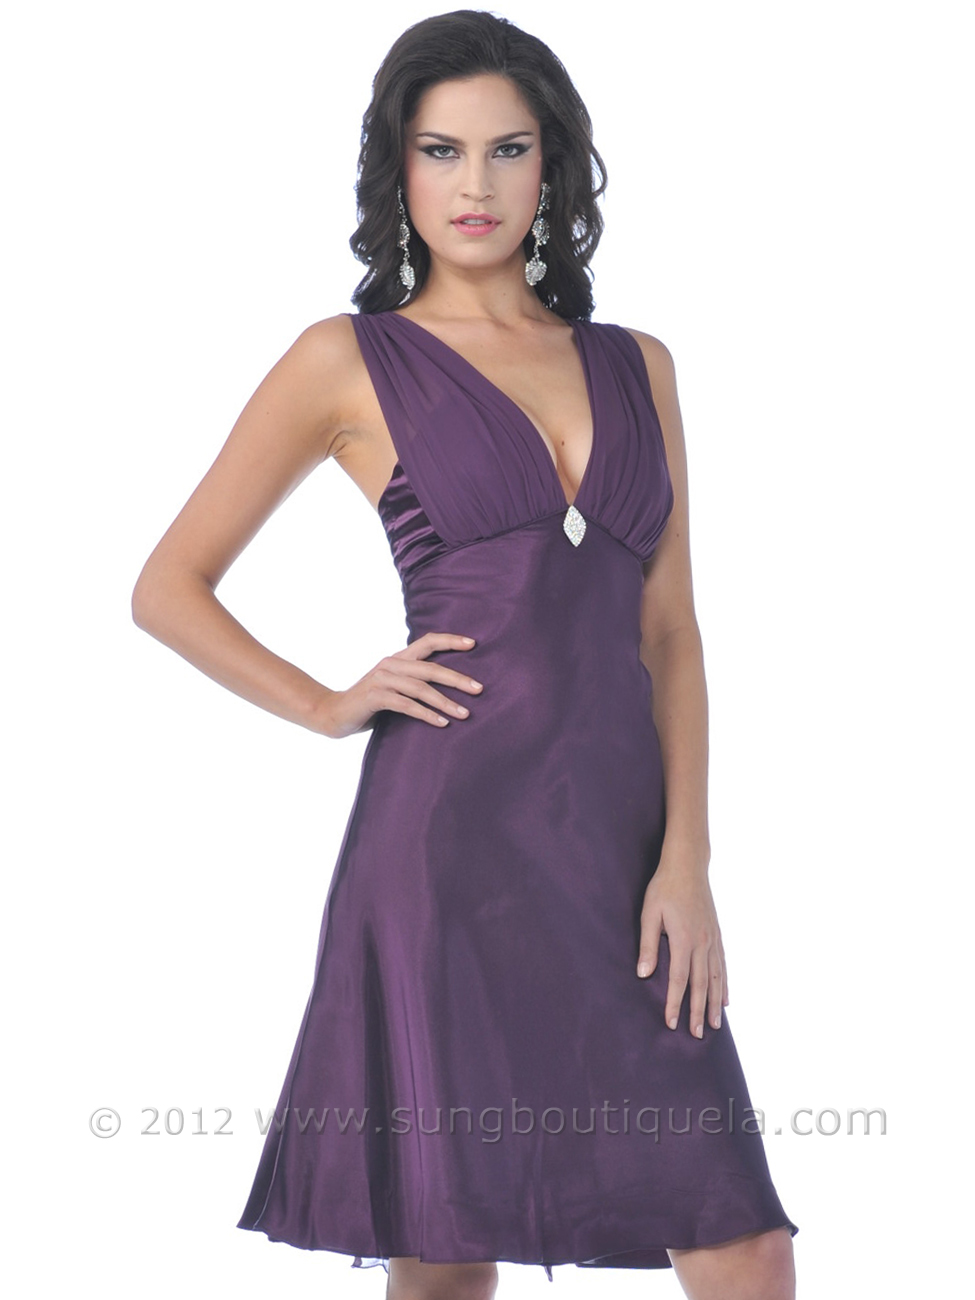 Satin Cocktail Dress with Rhinestone Pin | Sung Boutique L.A.